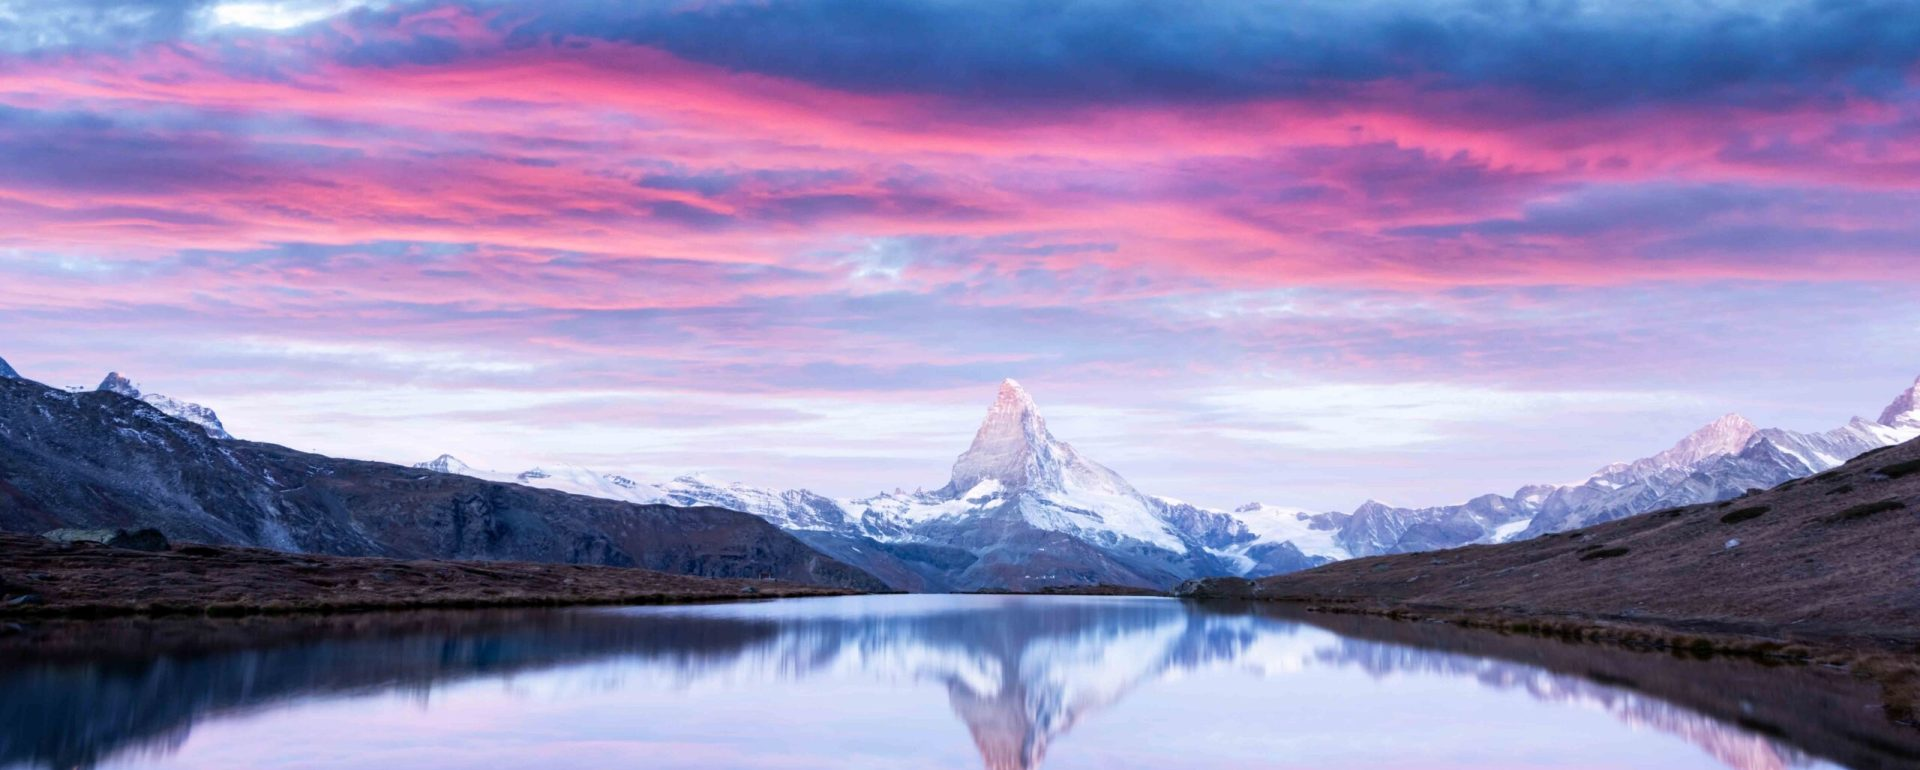 Magic landscape with colorful sunrise on Stellisee lake. Snowy Matterhorn Cervino peak with reflection in clear water. Zermatt, Swiss Alps